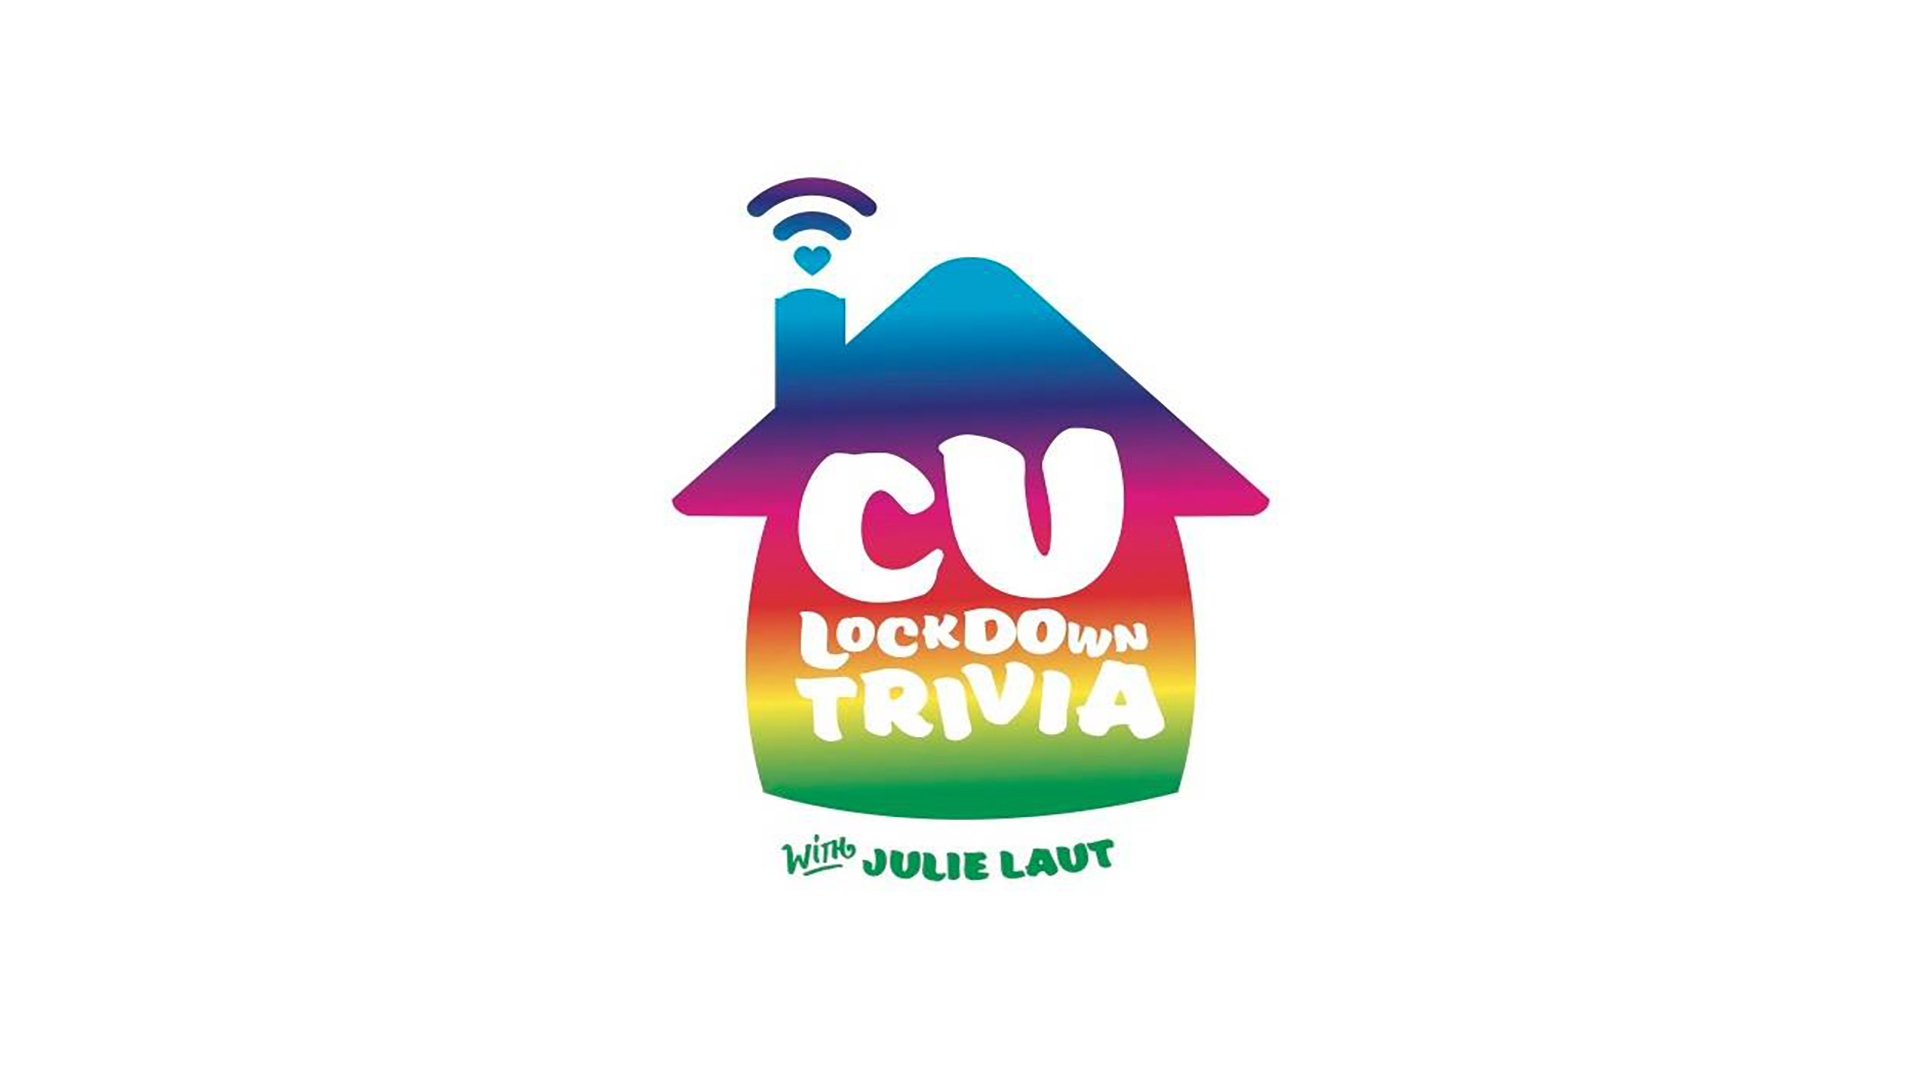 A rainbow colored house with CU lockdown trivia on it